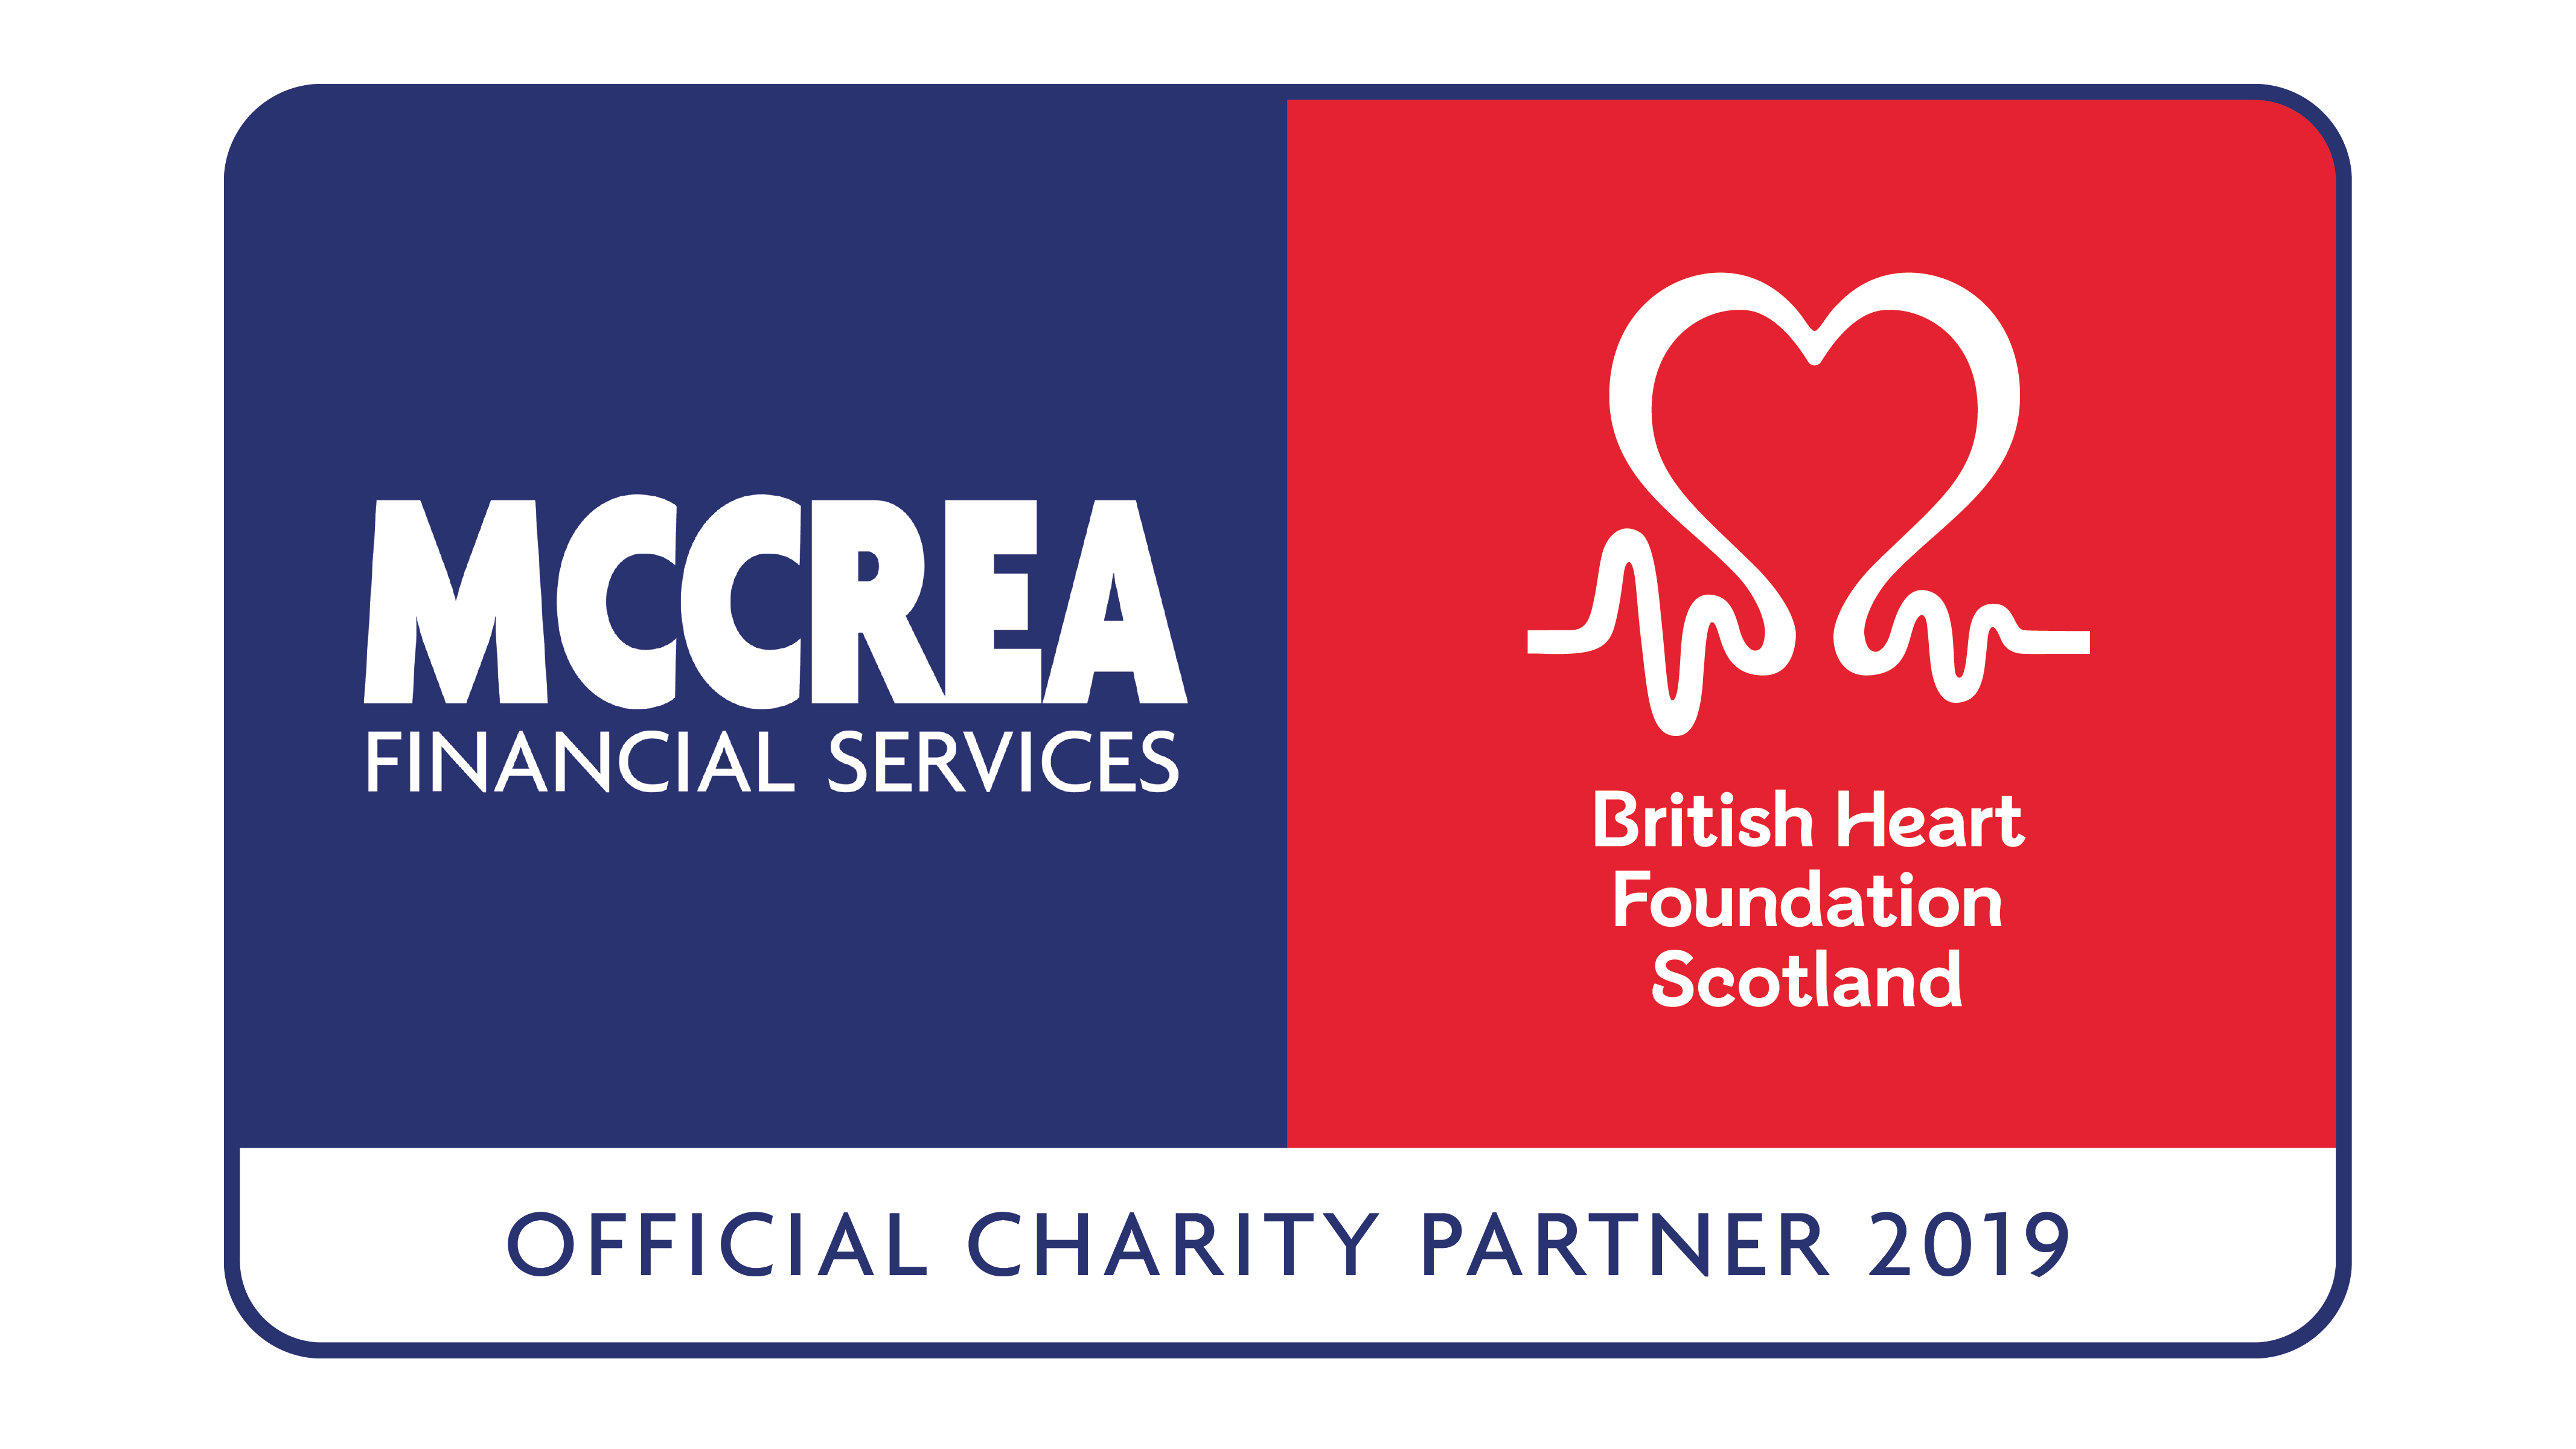 British Heart Foundation and McCrea Financial Services